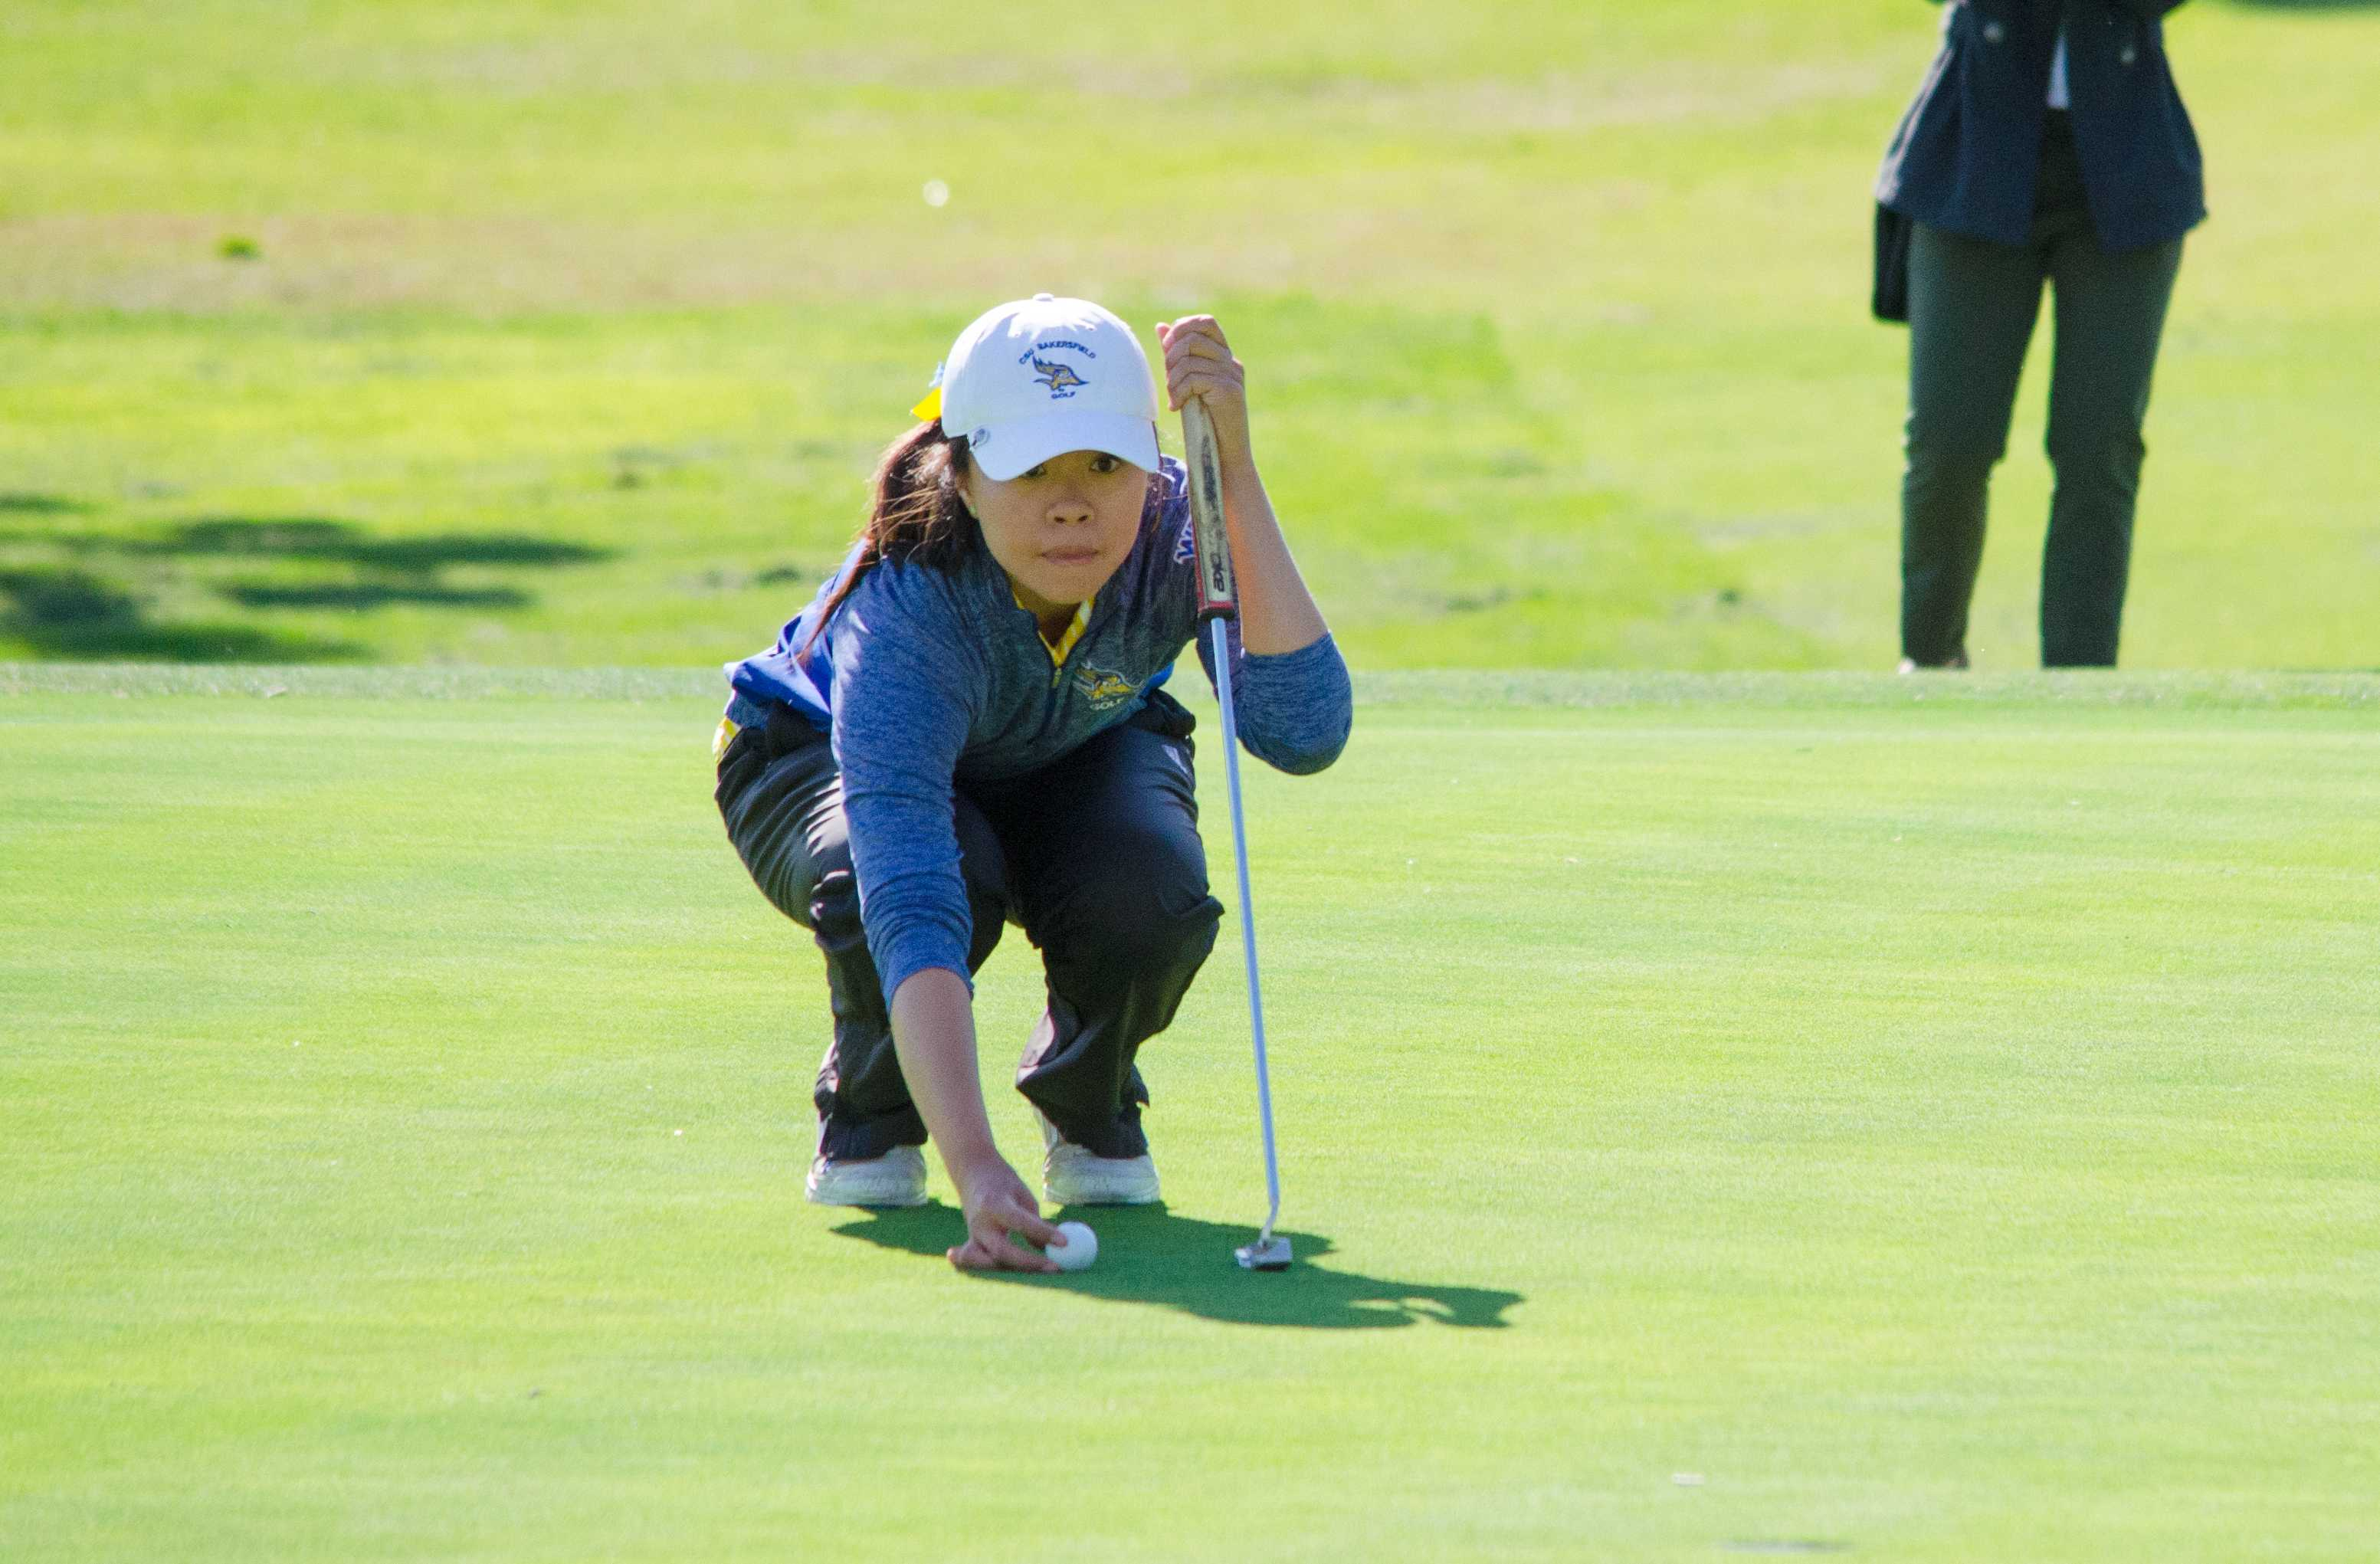 CSUB senior Ariel Lee, sets her shot at the Bakersfield Country Club on March 26 during the CSUB-CSUN dual.  Photo by Simer Khurana/ The Runner